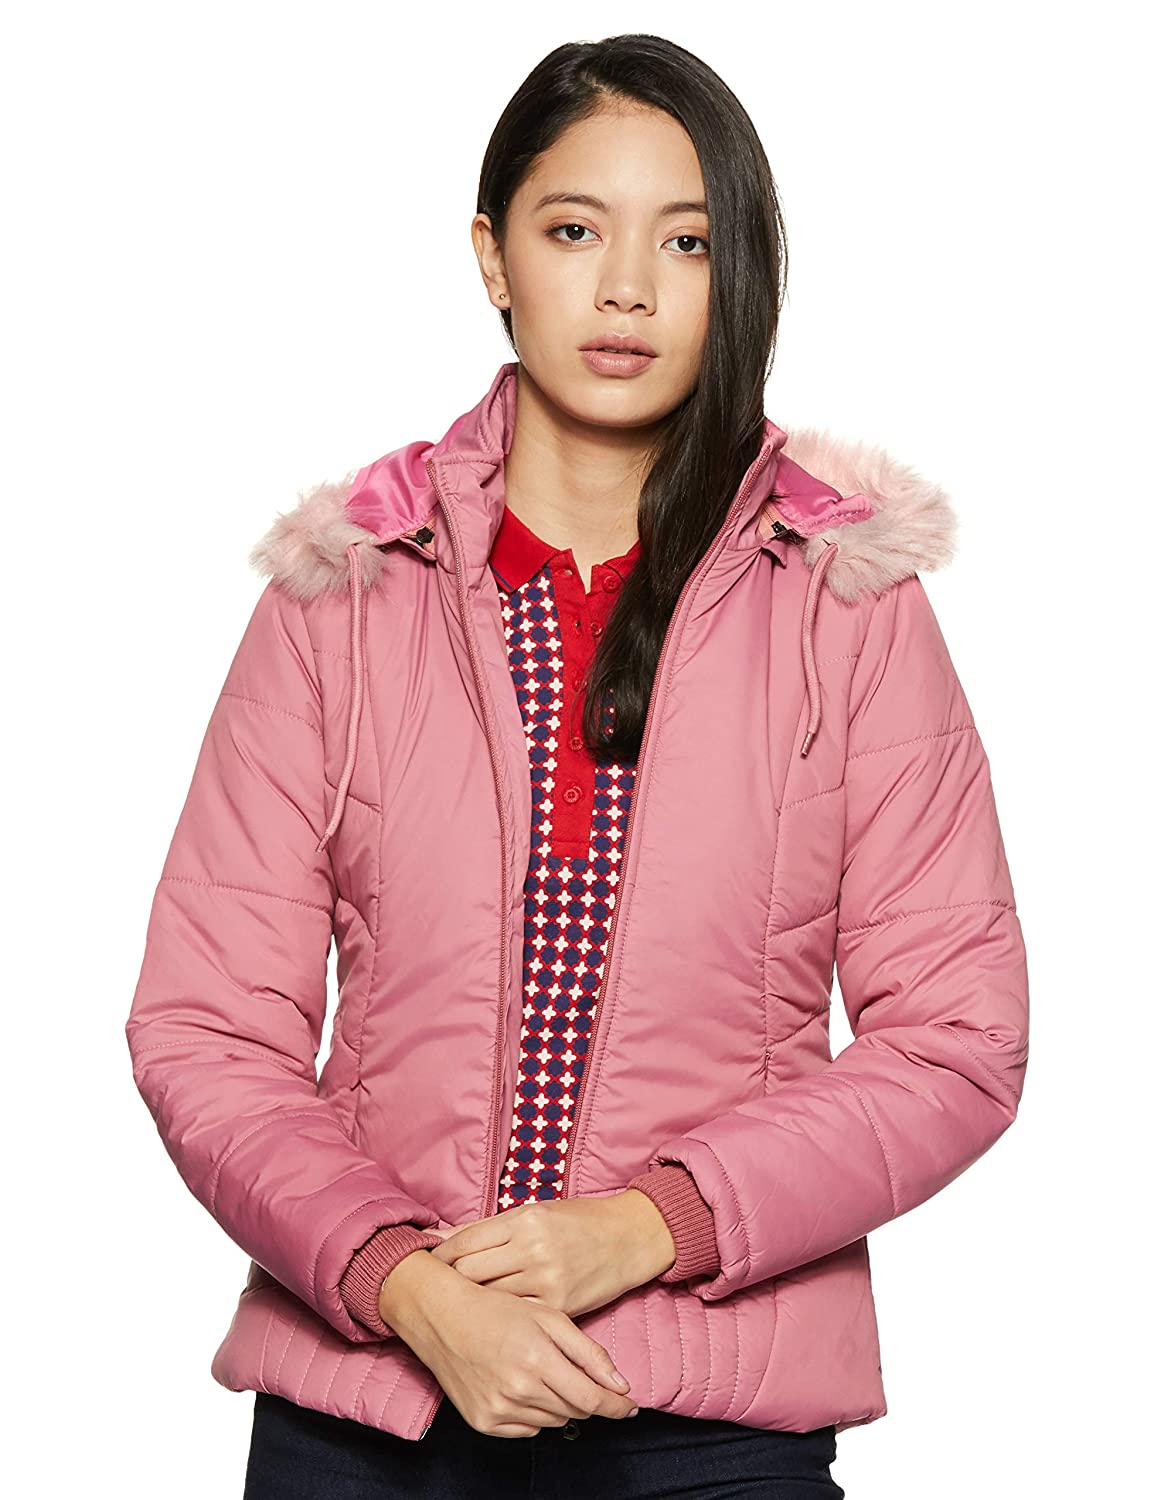 Min 65% Off on Sweatshirts and Jackets from Amazon Brand -Eden & Ivy, Cazibe and More